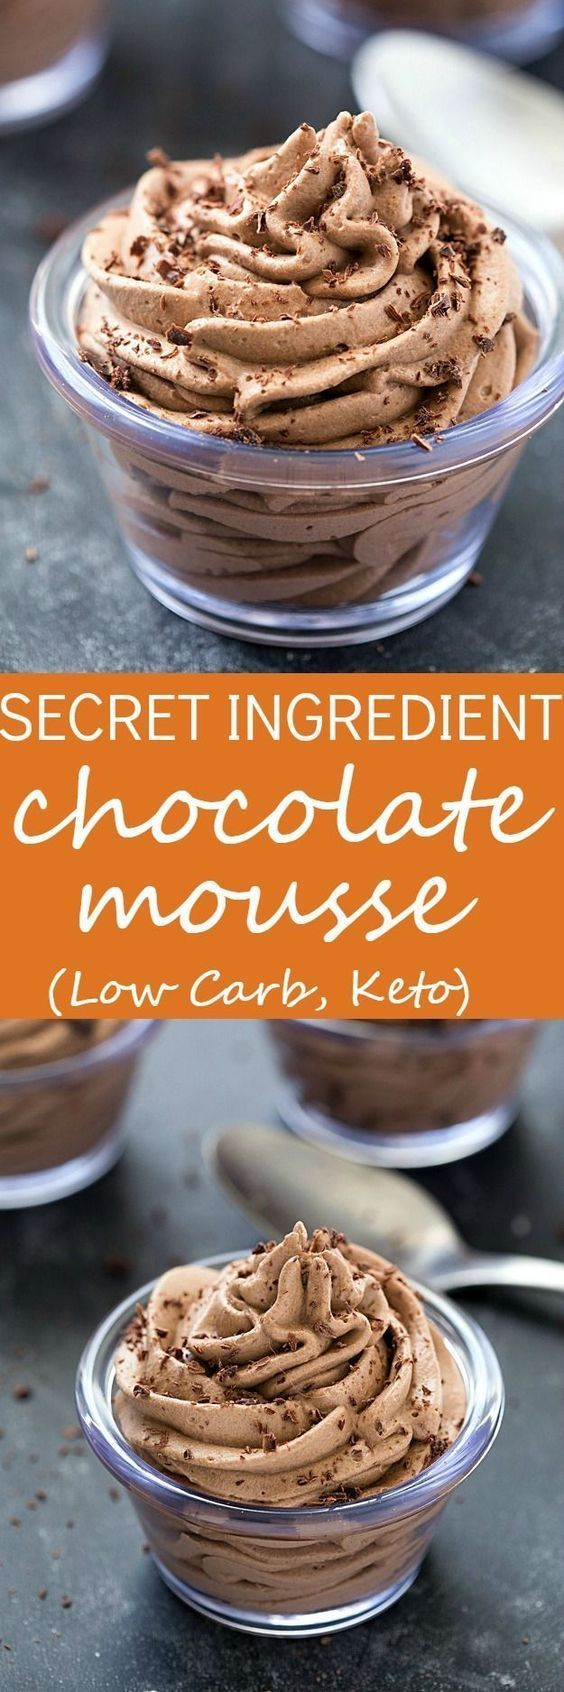 Secret Ingredient Easy Chocolate Mousse Recipe (Low Carb Keto) - Create your amazing and incredibly easy chocolate mousse! The secret ingredient creates a whipped mousse that's secretly healthy.